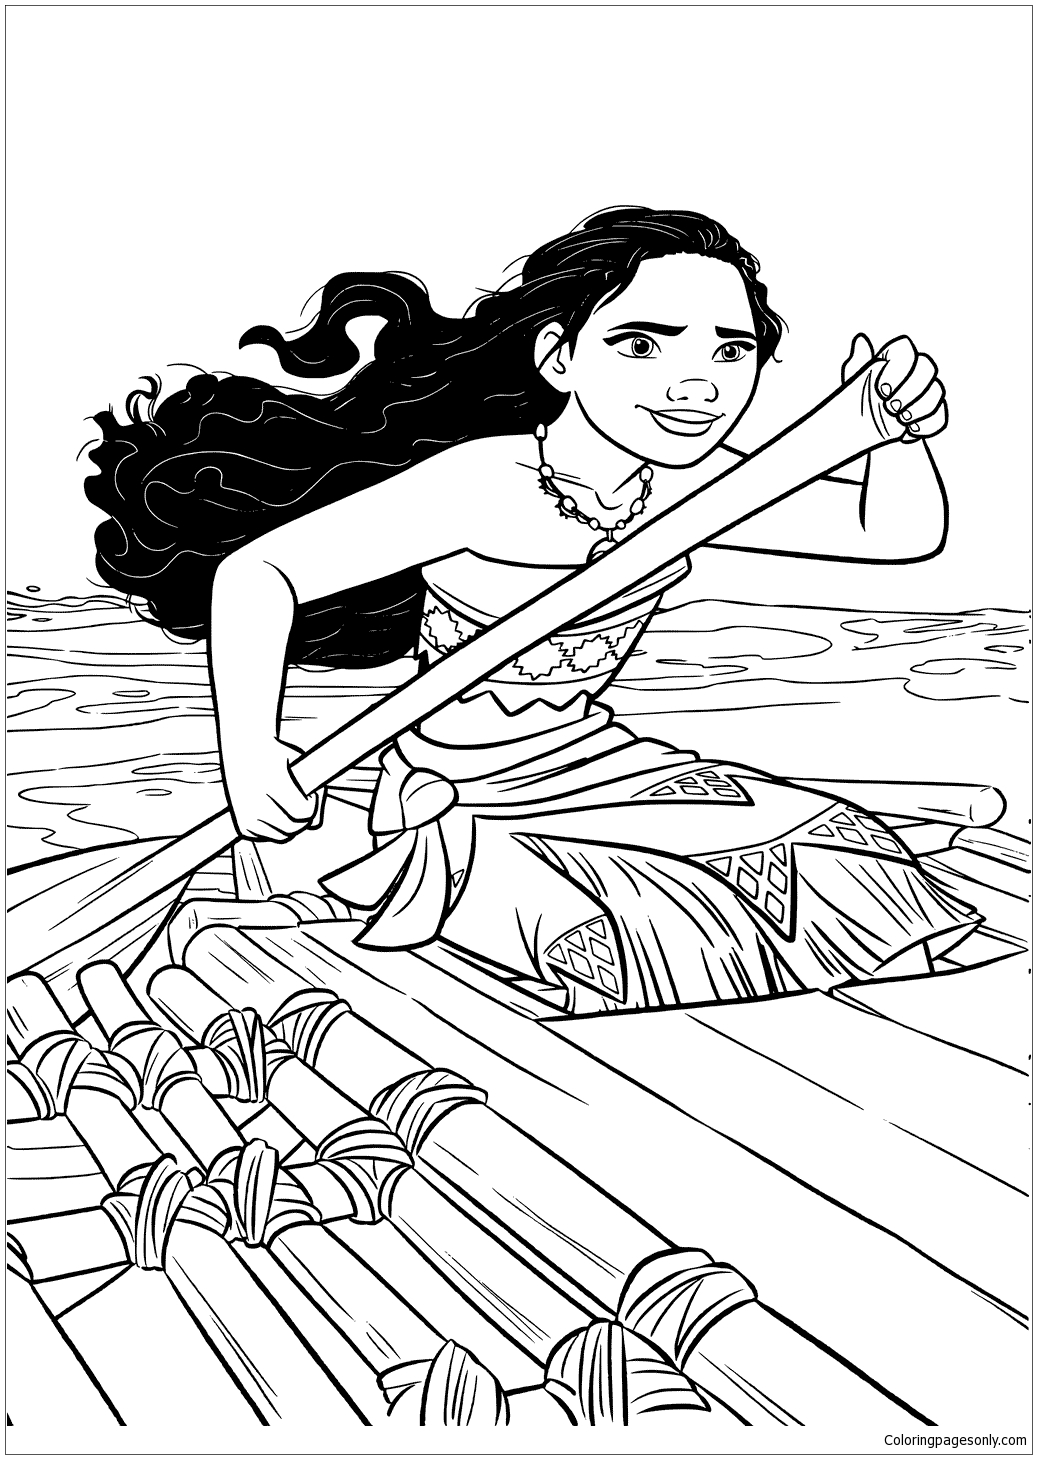 Moana In A Boat Coloring Page